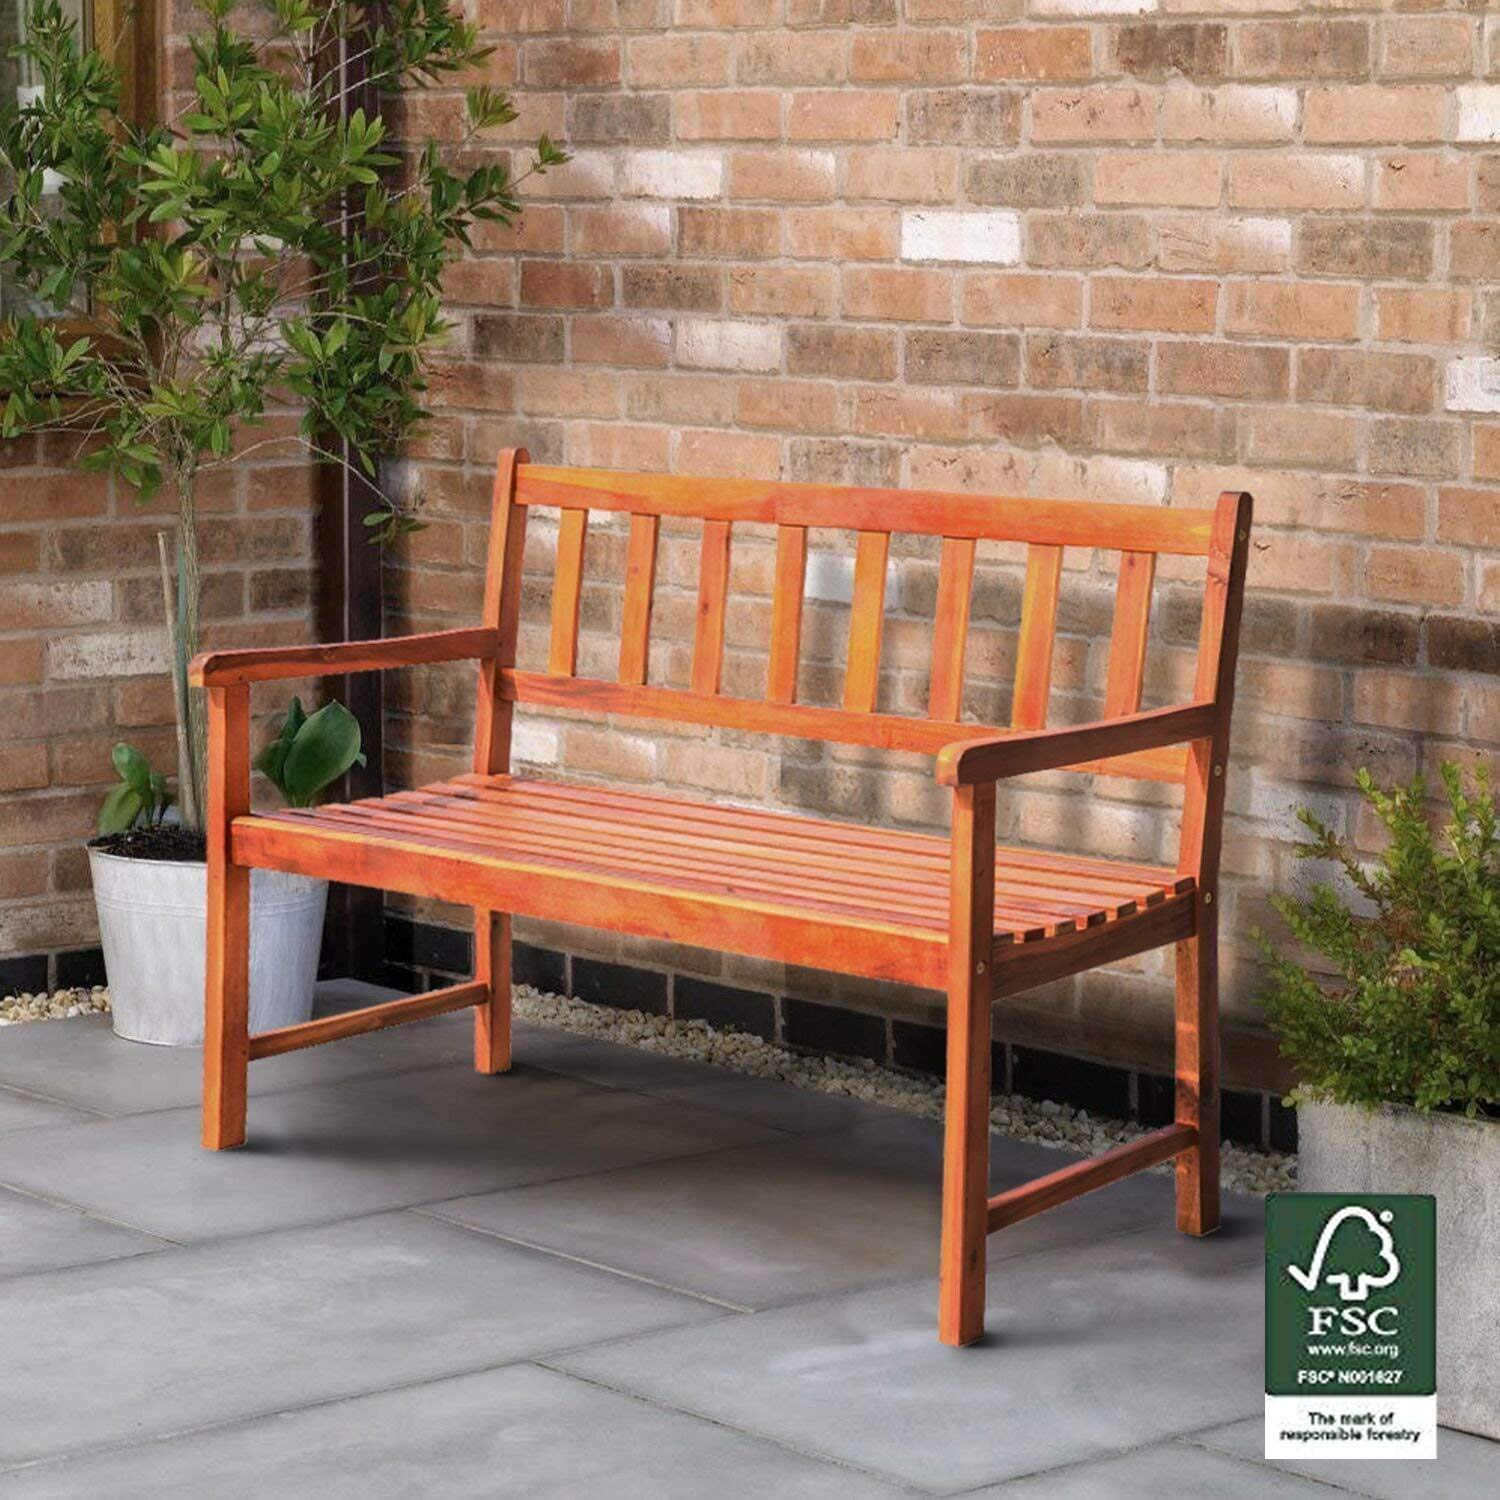 Leisure Zone Wooden Garden Bench Loveseat FSC Hardwood Patio Bench - Classic 2 Seater Outdoor 4ft, High Back Seat (Natural)